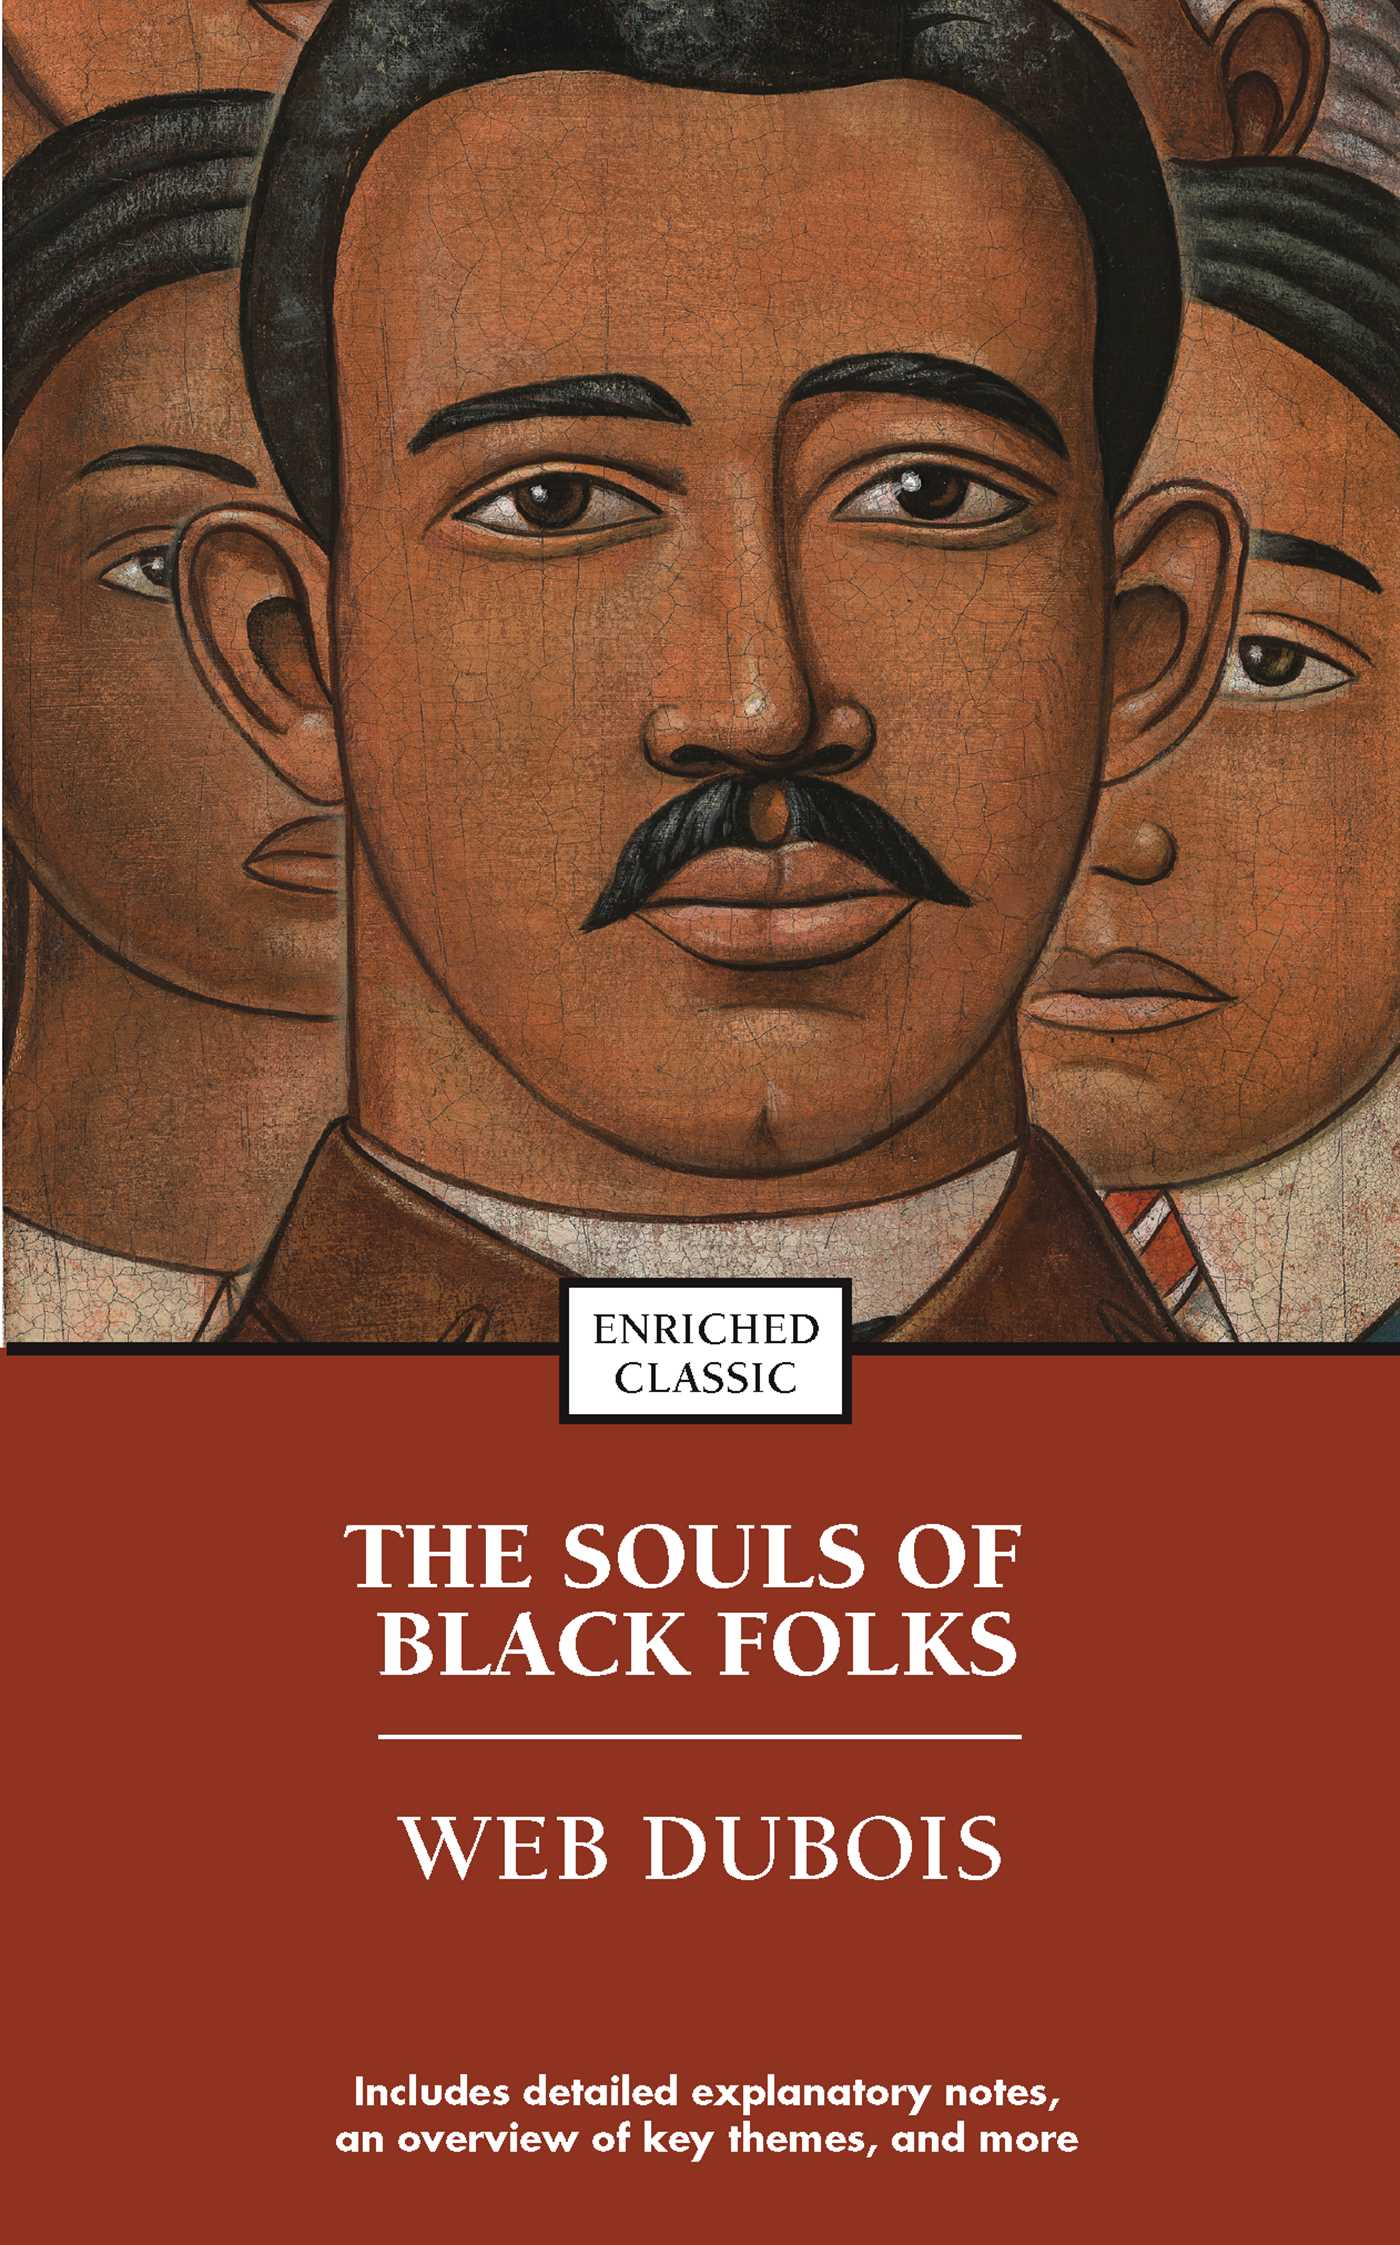 web dubois the souls of black folk essay Dubois' work the souls of black folk, though constituent of several divergent essays is to many the source and center of nearly all his messages regarding the truth telling that needs to be done, in history to properly place the plight of blacks into the context and even to some extent the present.